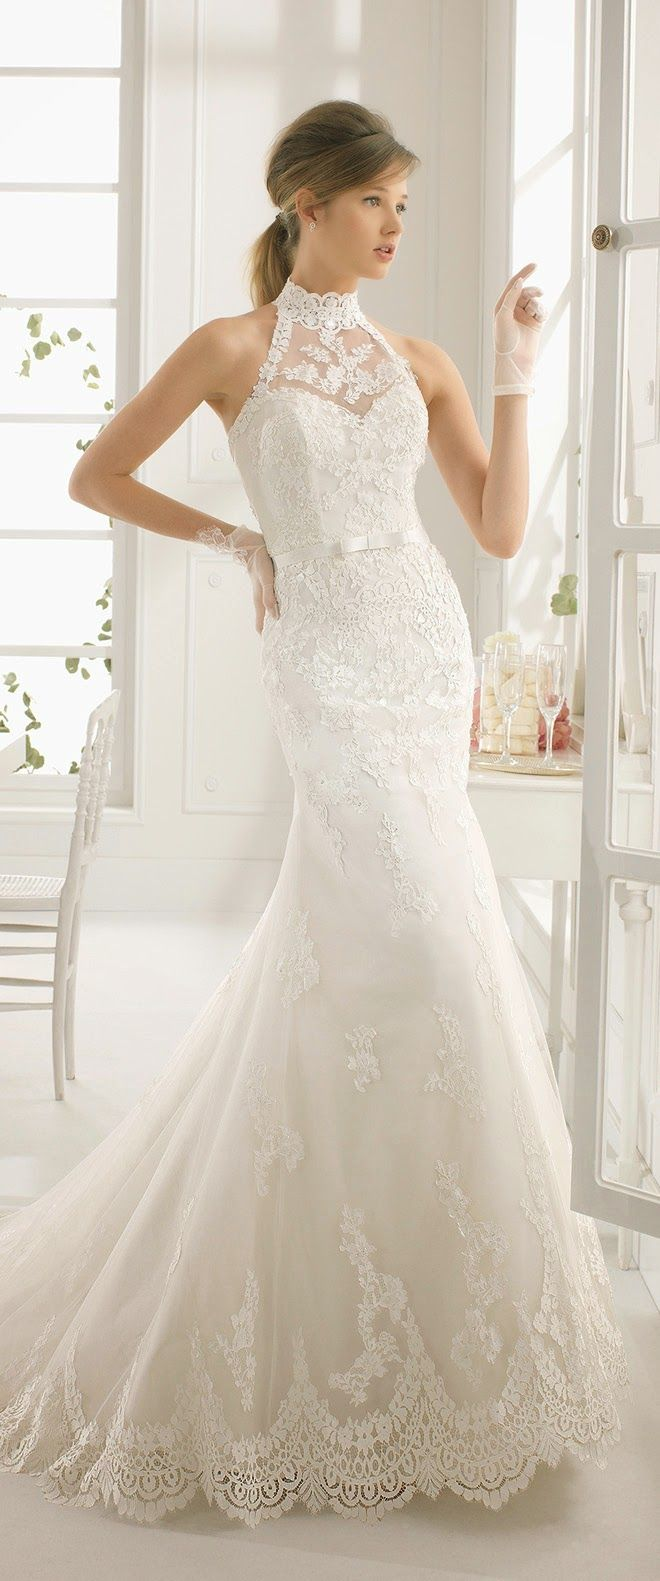 17 Best images about Halter Style Wedding Dresses on Pinterest  Gowns Neckline and Princess